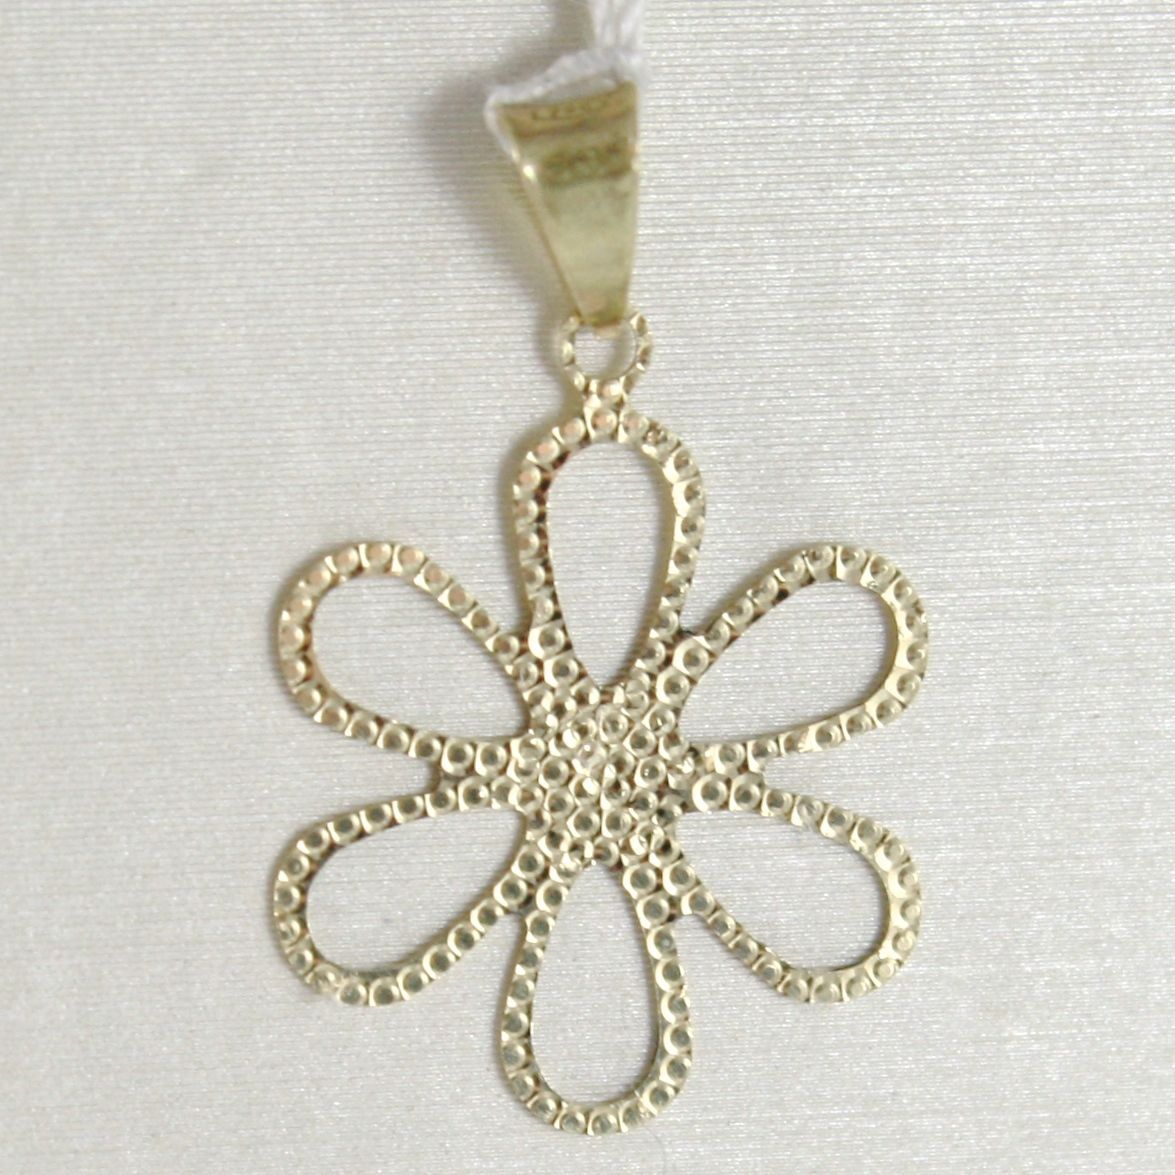 YELLOW GOLD PENDANT 750 18K DAISY FLOWER PENDANT MILLED LONG 2.2 CM